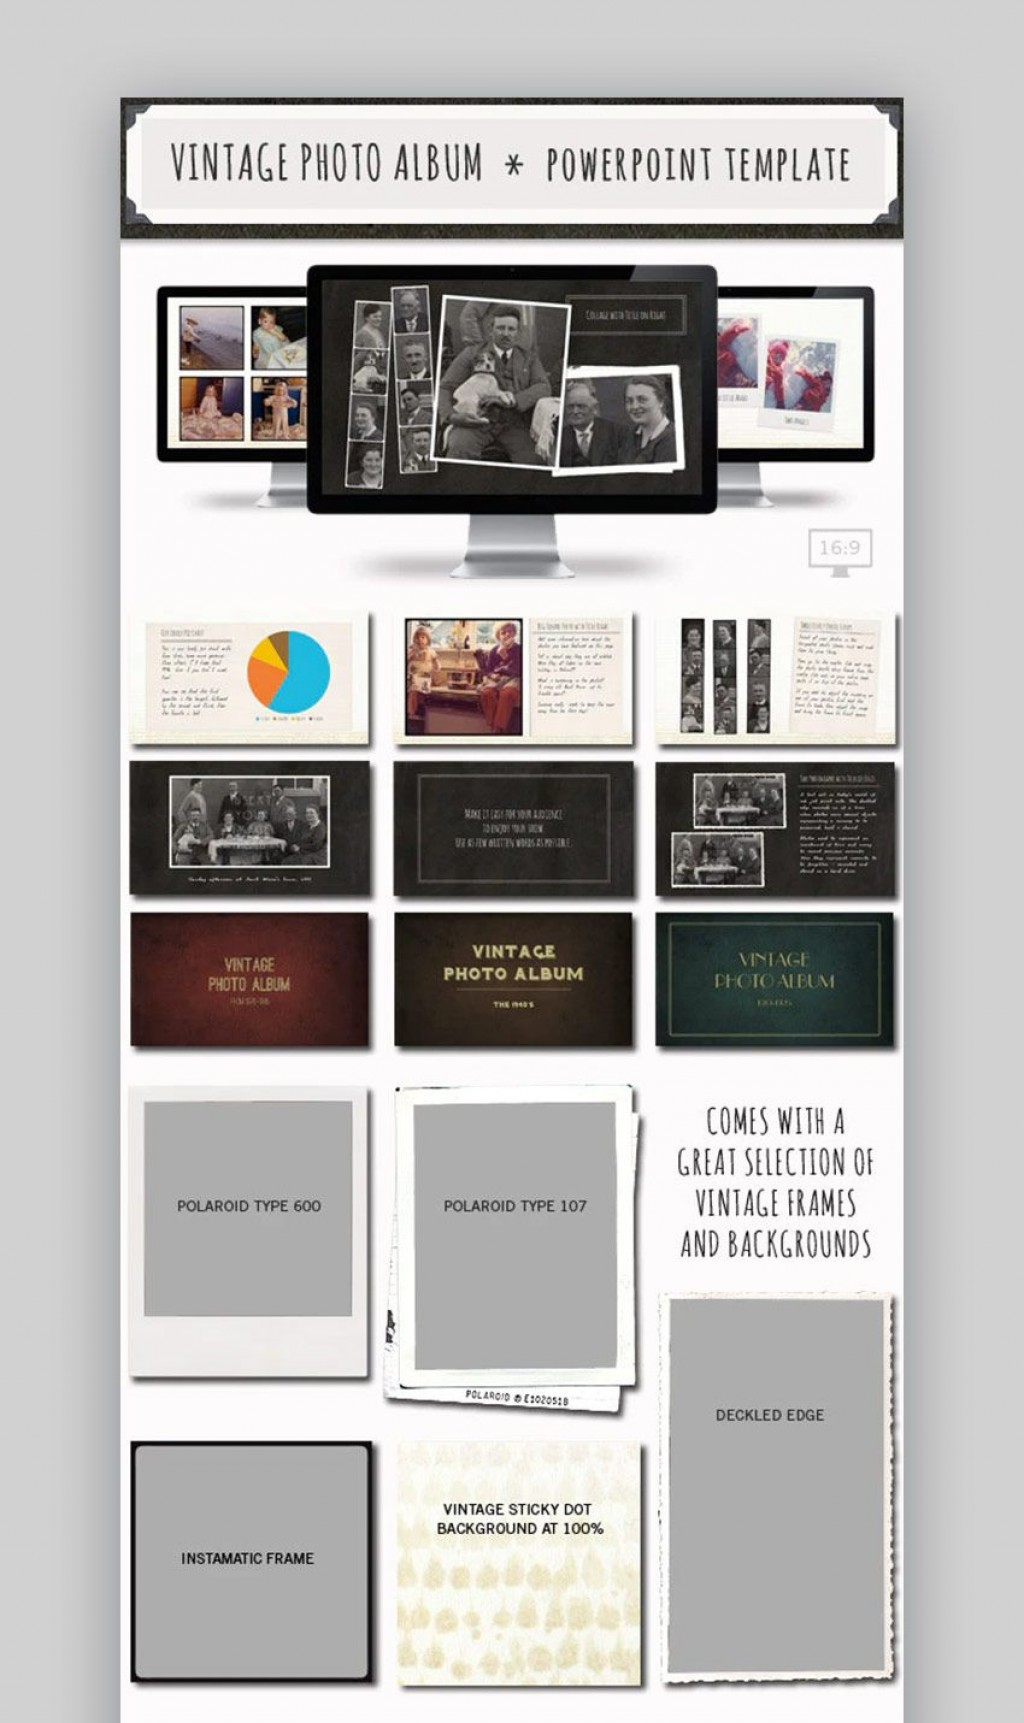 000 Singular In Loving Memory Powerpoint Template Free High Definition Large